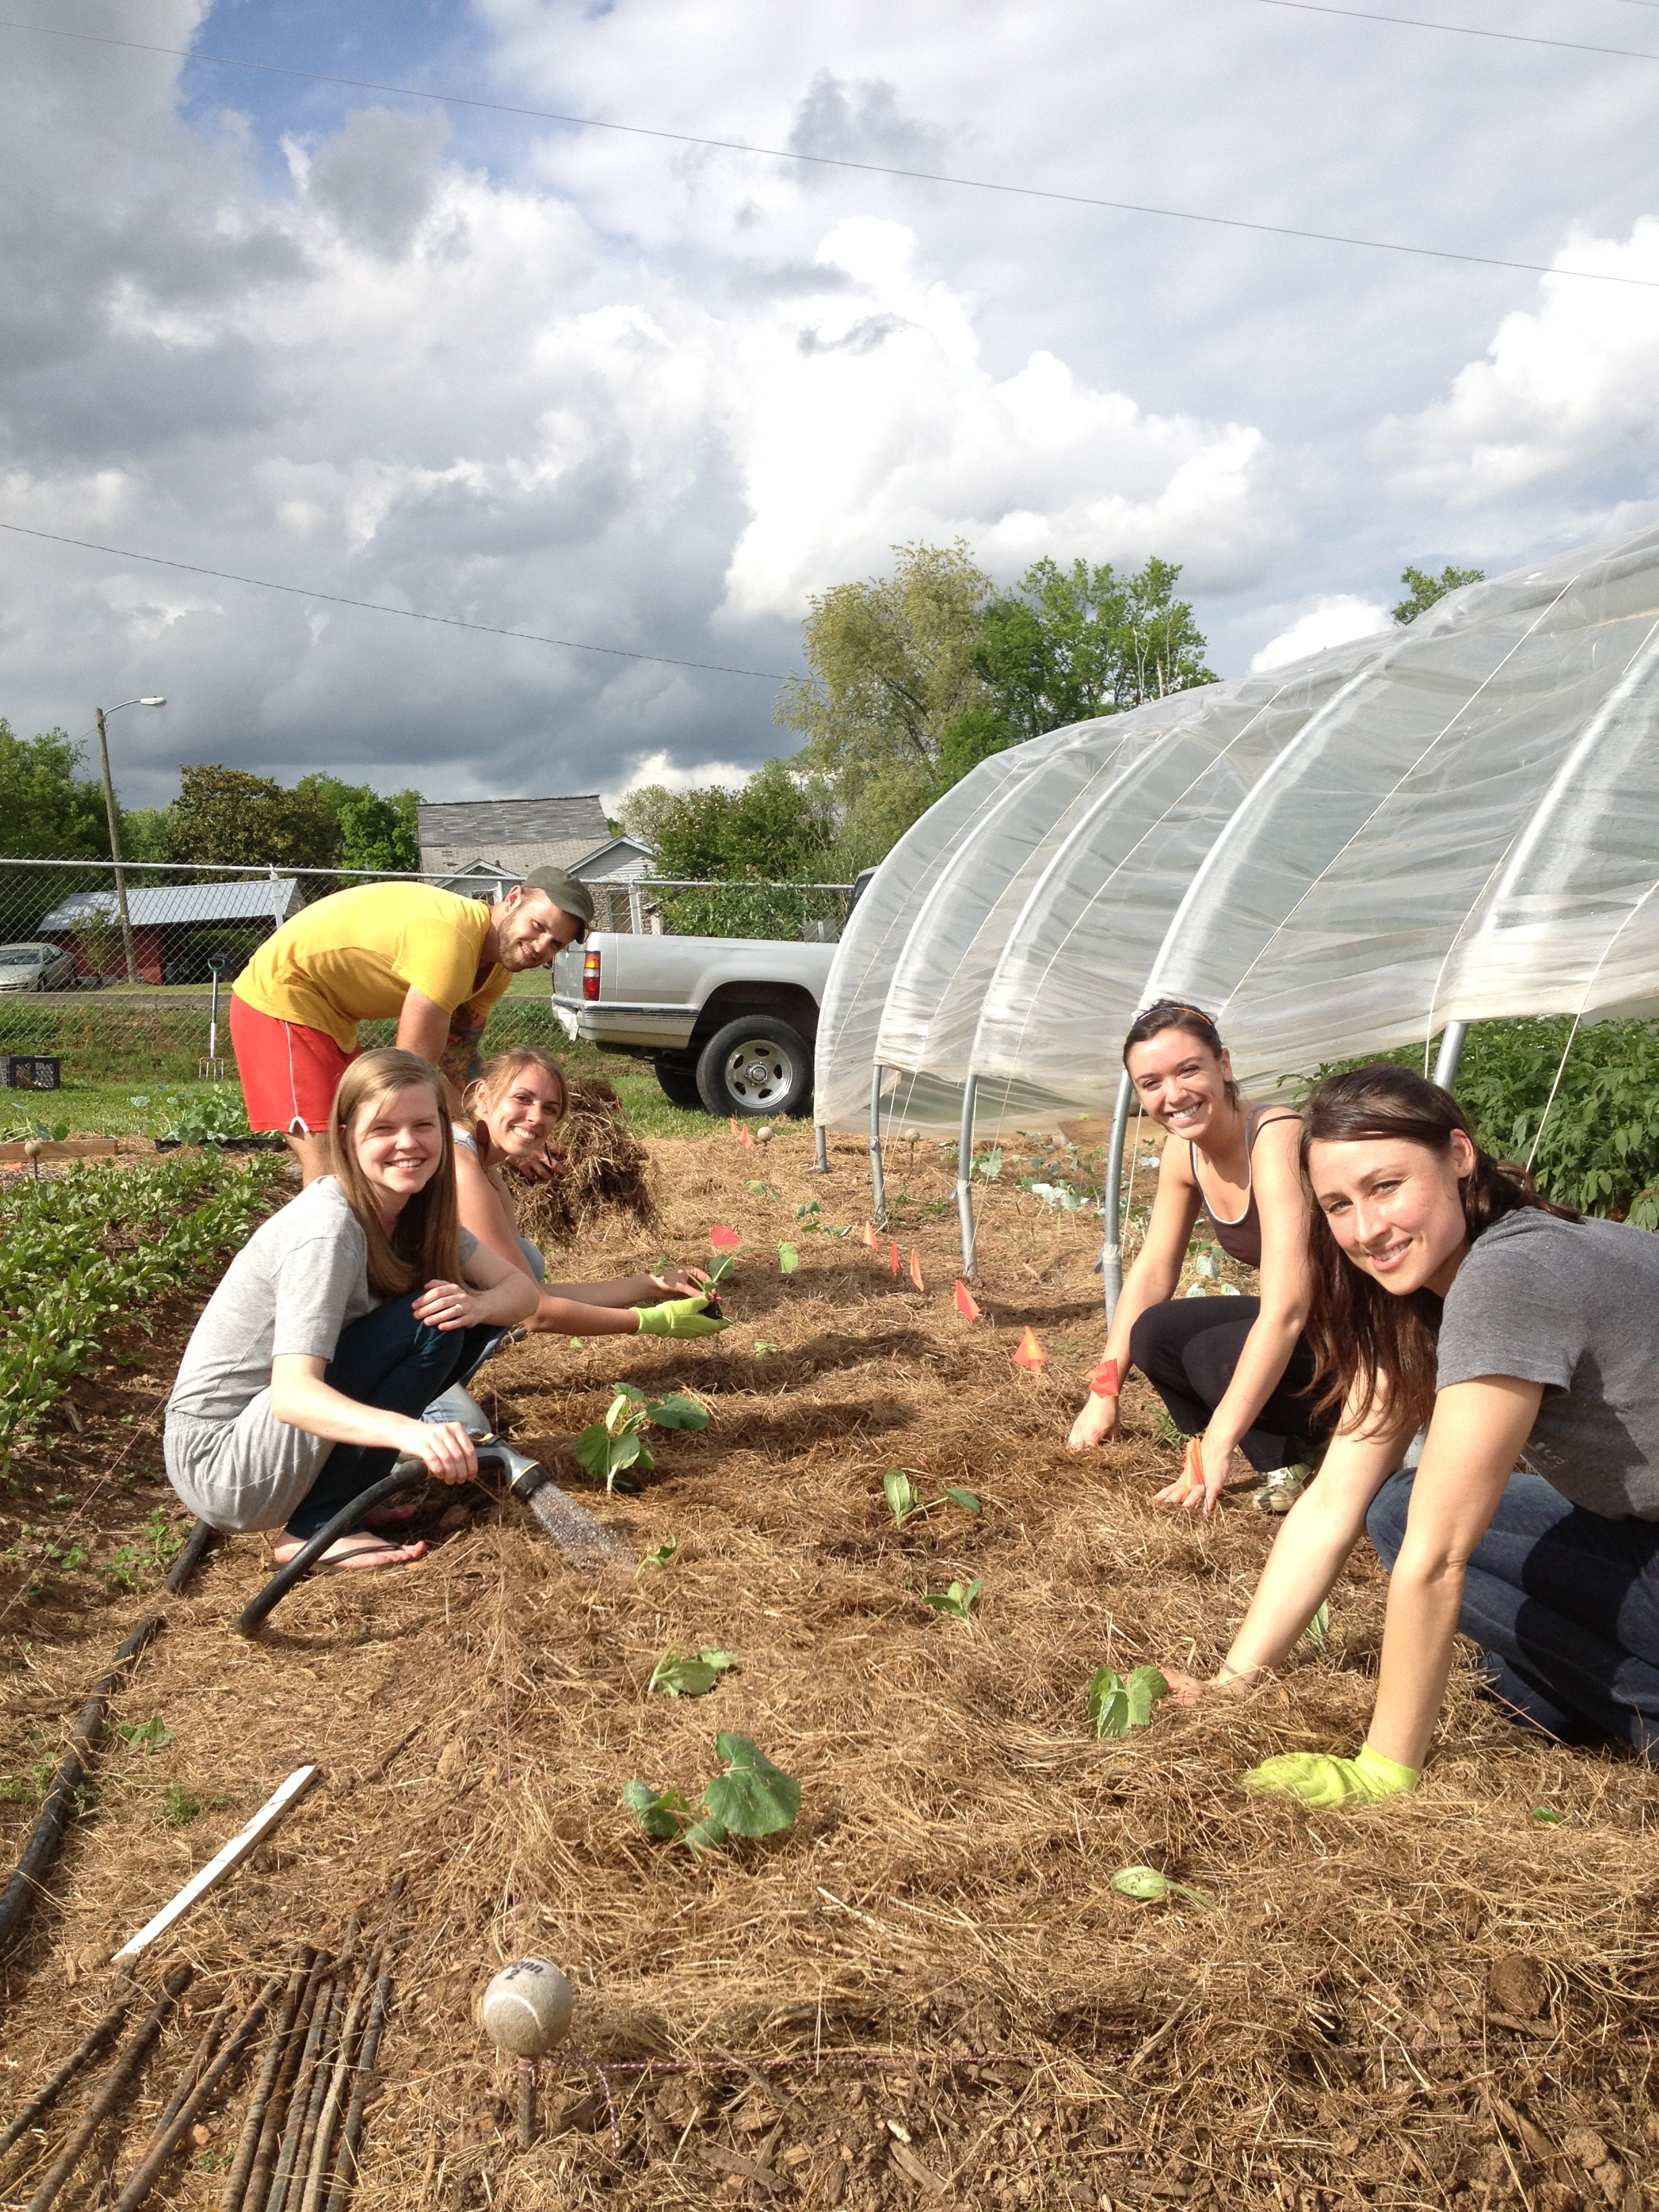 Our garden is primarily kept by the work of volunteers. Single students at the Institute do a weekly garden shift. This summer, over 600 outside volunteers contributed continual work in the garden.